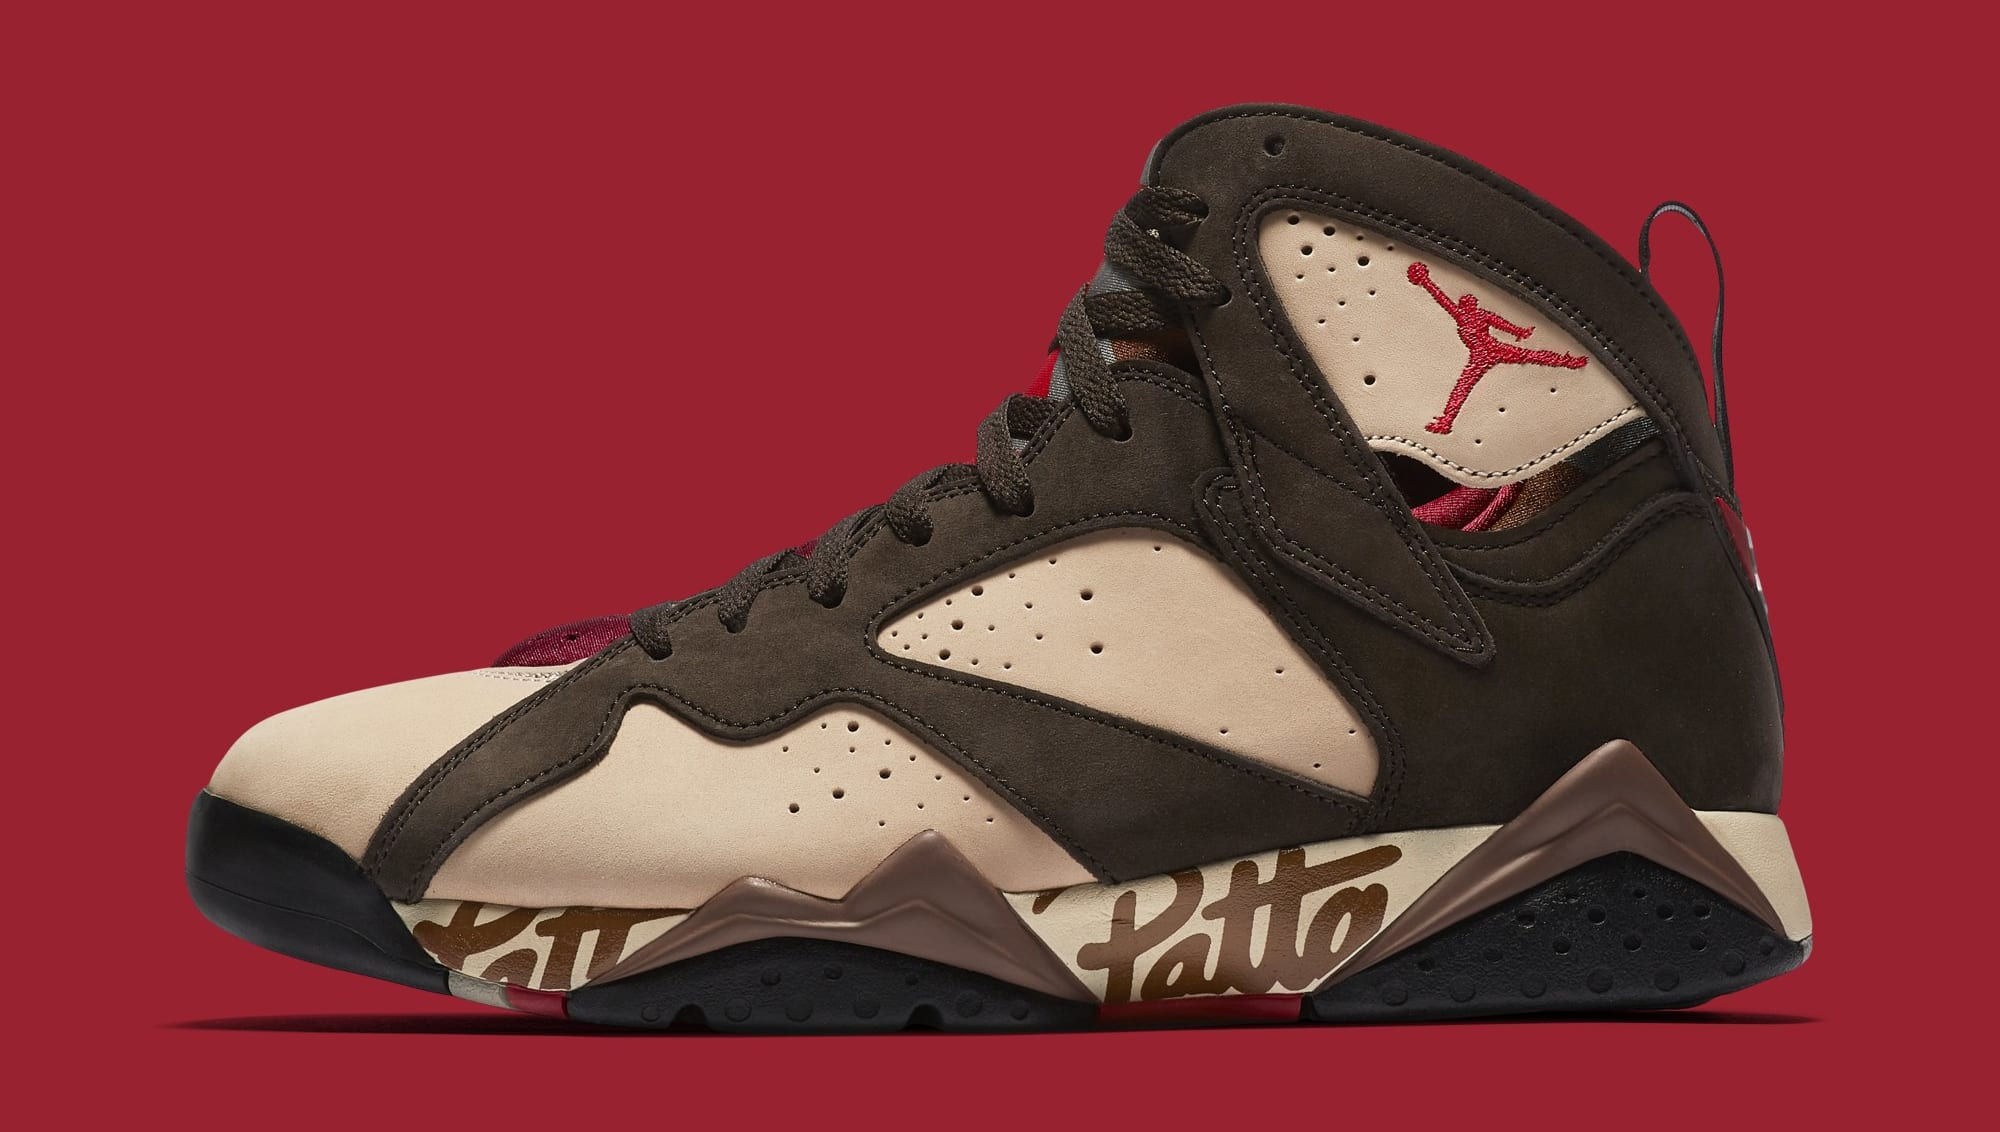 240abf9c2cc Patta x Air Jordan 7 OG SP AT3375-100 AT3375-200 Release Date | Sole ...